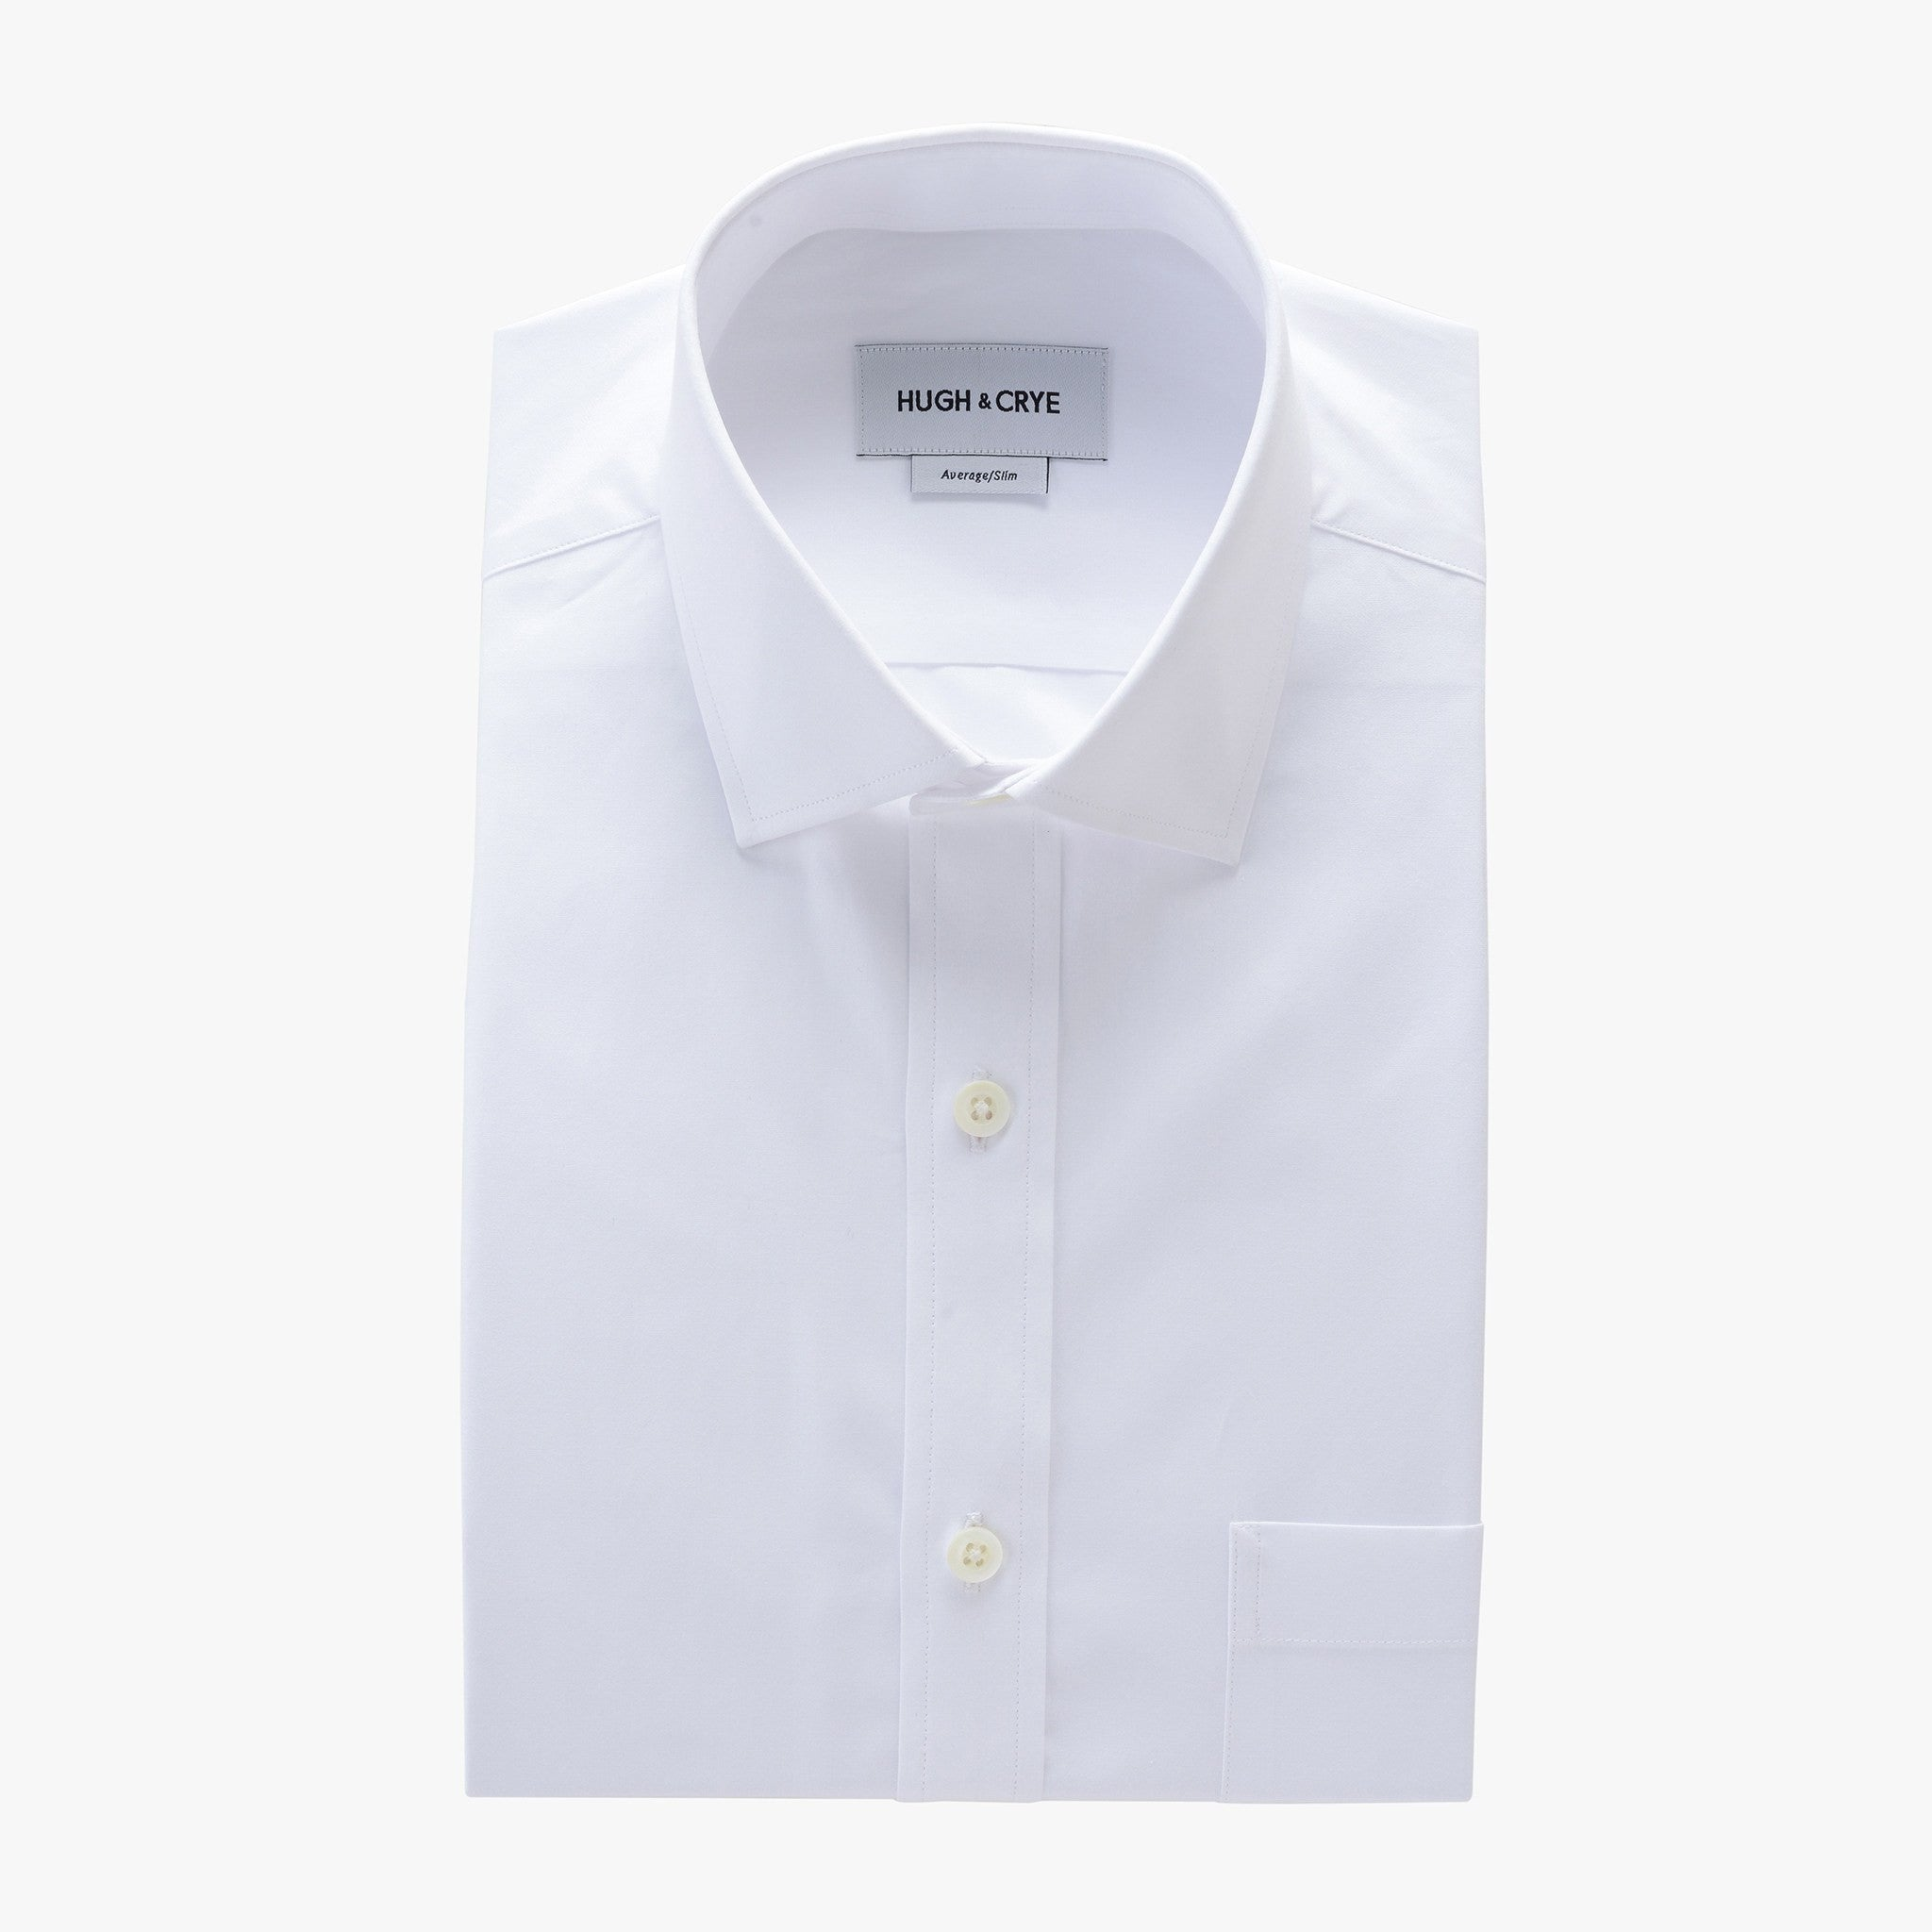 small spread collar shirt in white solid 120s poplin - mayfair with pocket - flat